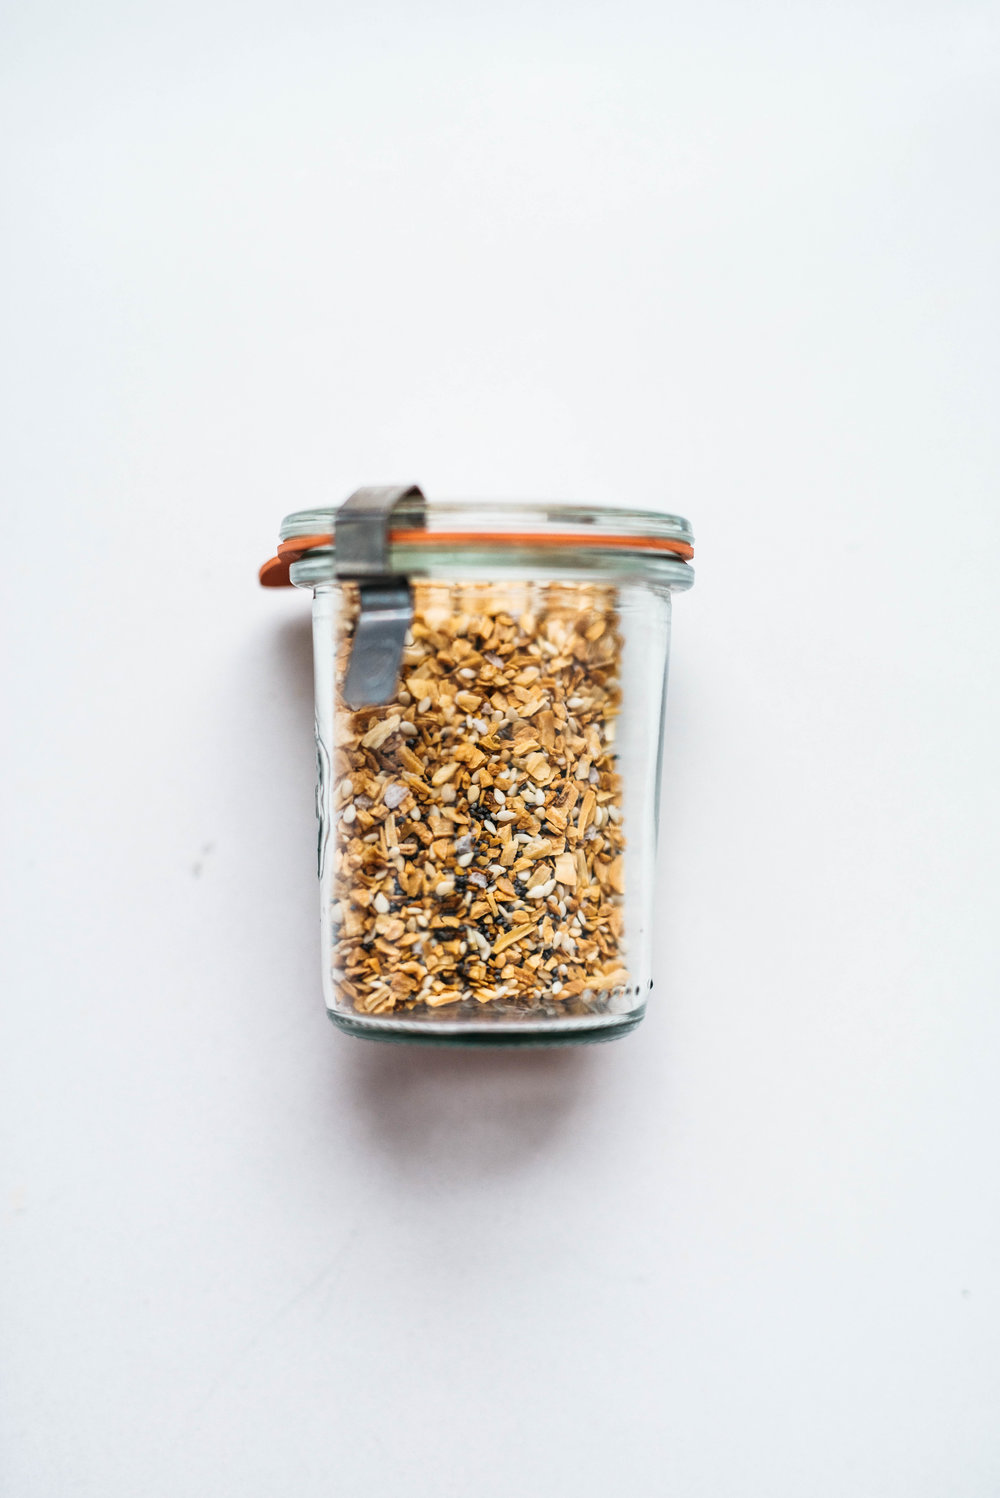 DIY EVERYTHING BAGEL SPICE | Dolly and Oatmeal